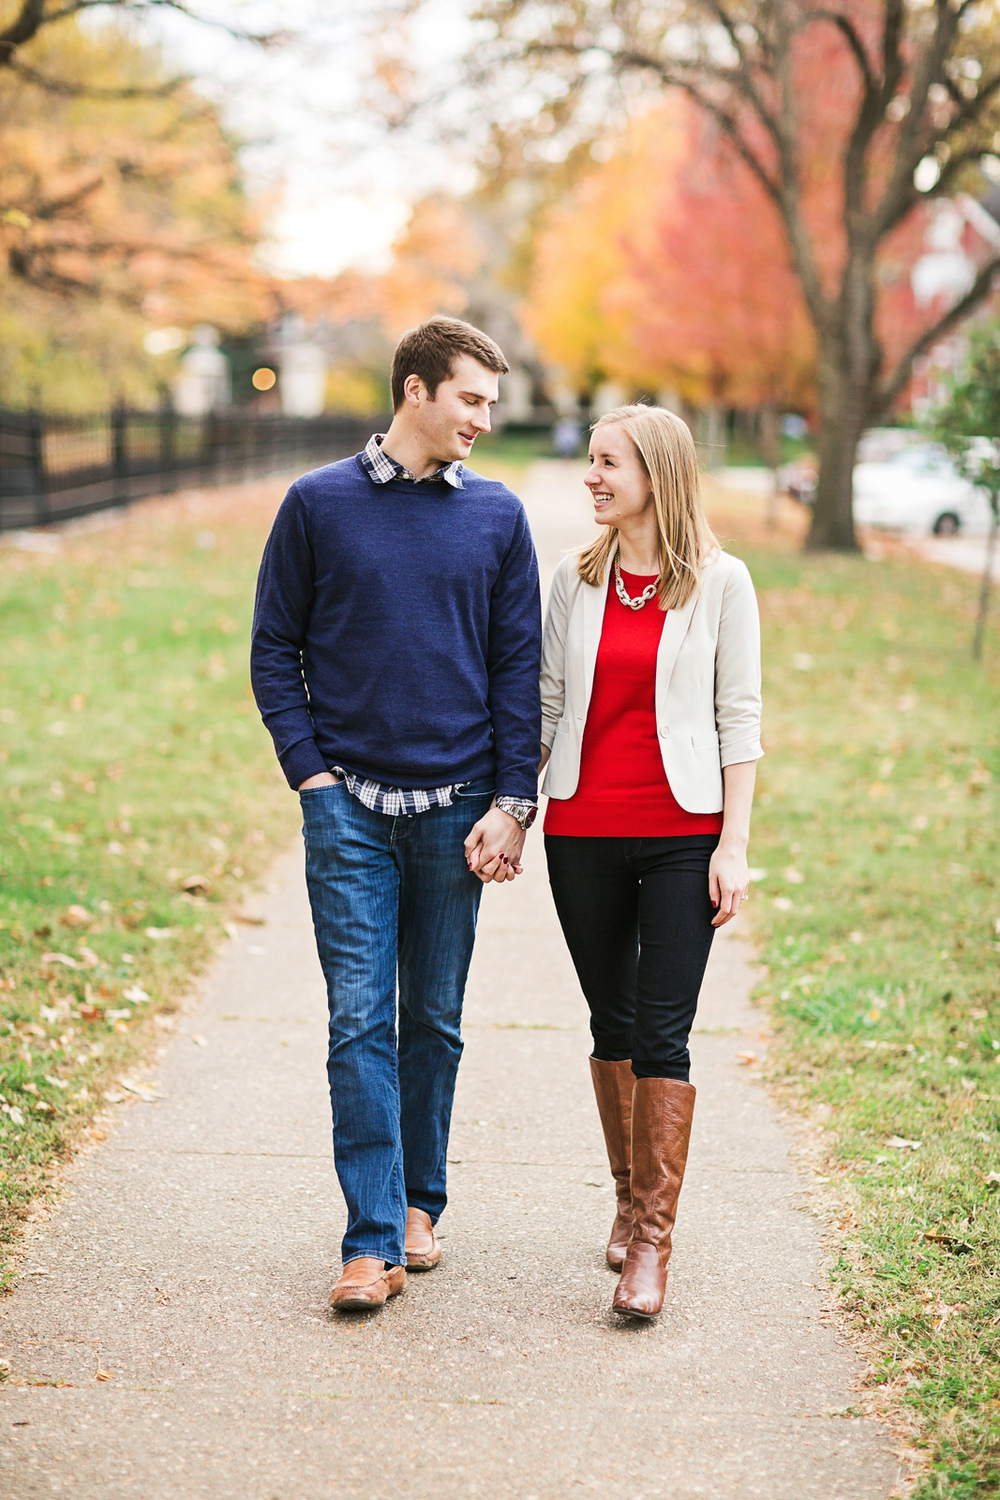 Oldani Photography St Louis Lafayette Square Park Engagement_20141102_170253.jpg